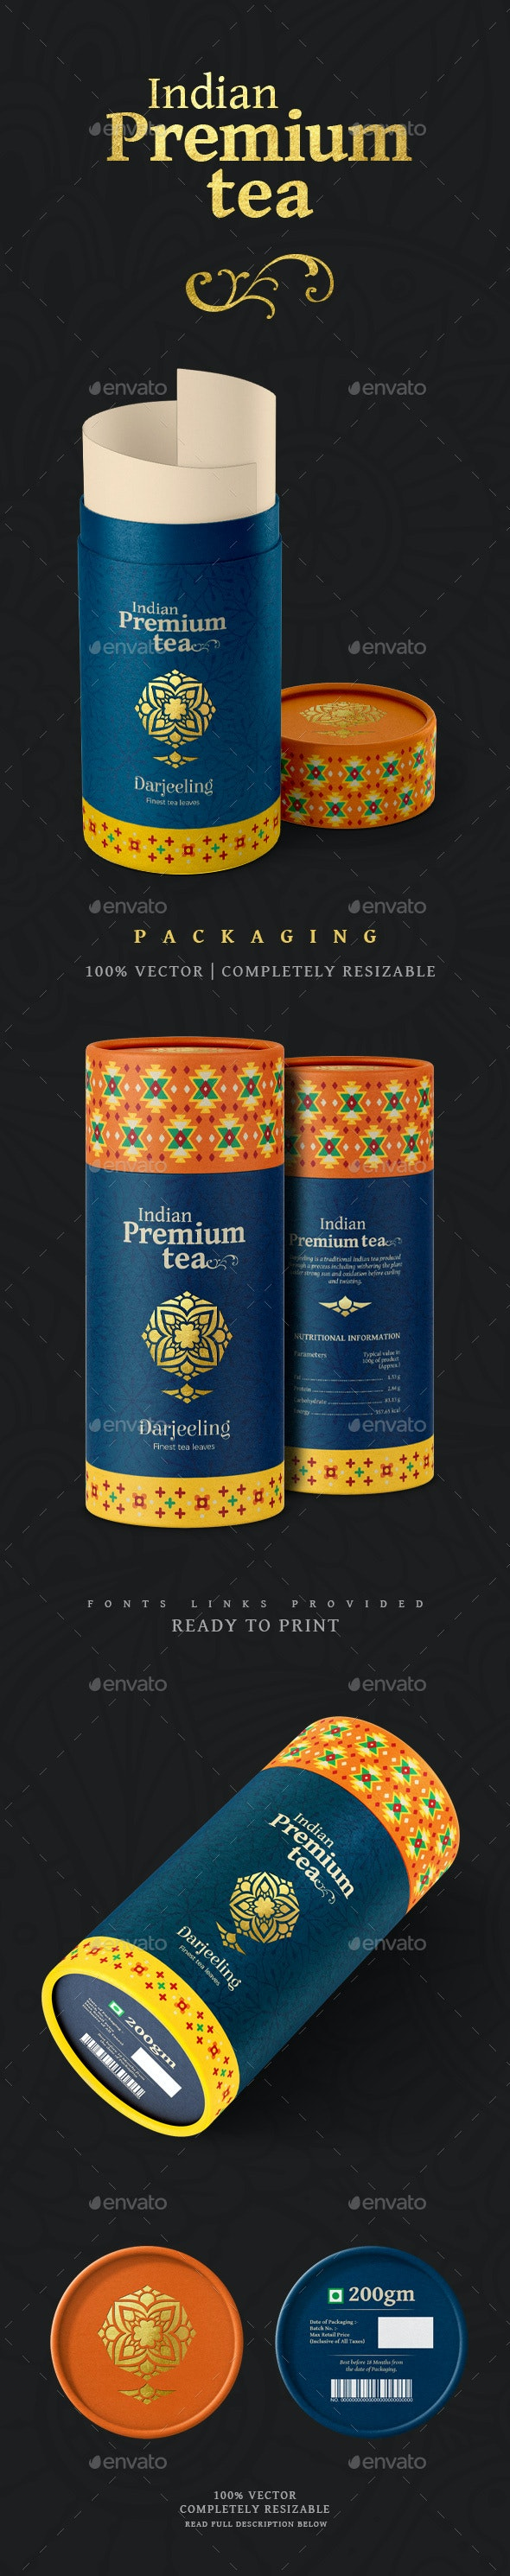 Indian Premium Tea - Packaging Print Templates